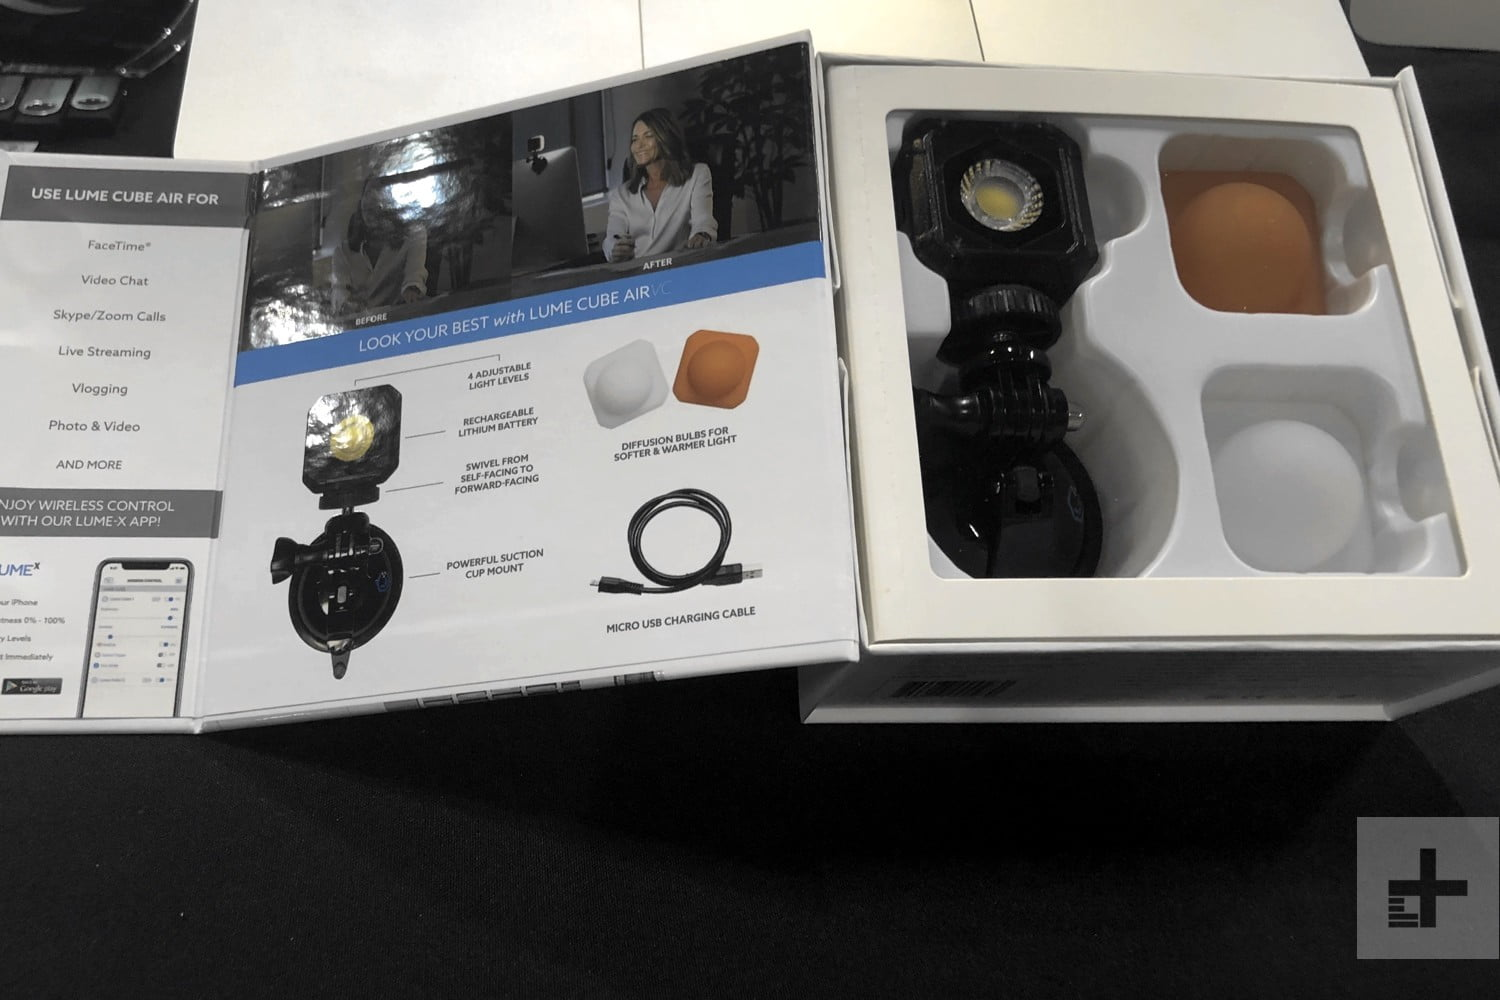 Lume Cube Air VC Is Designed To make You Look Good Livestreaming